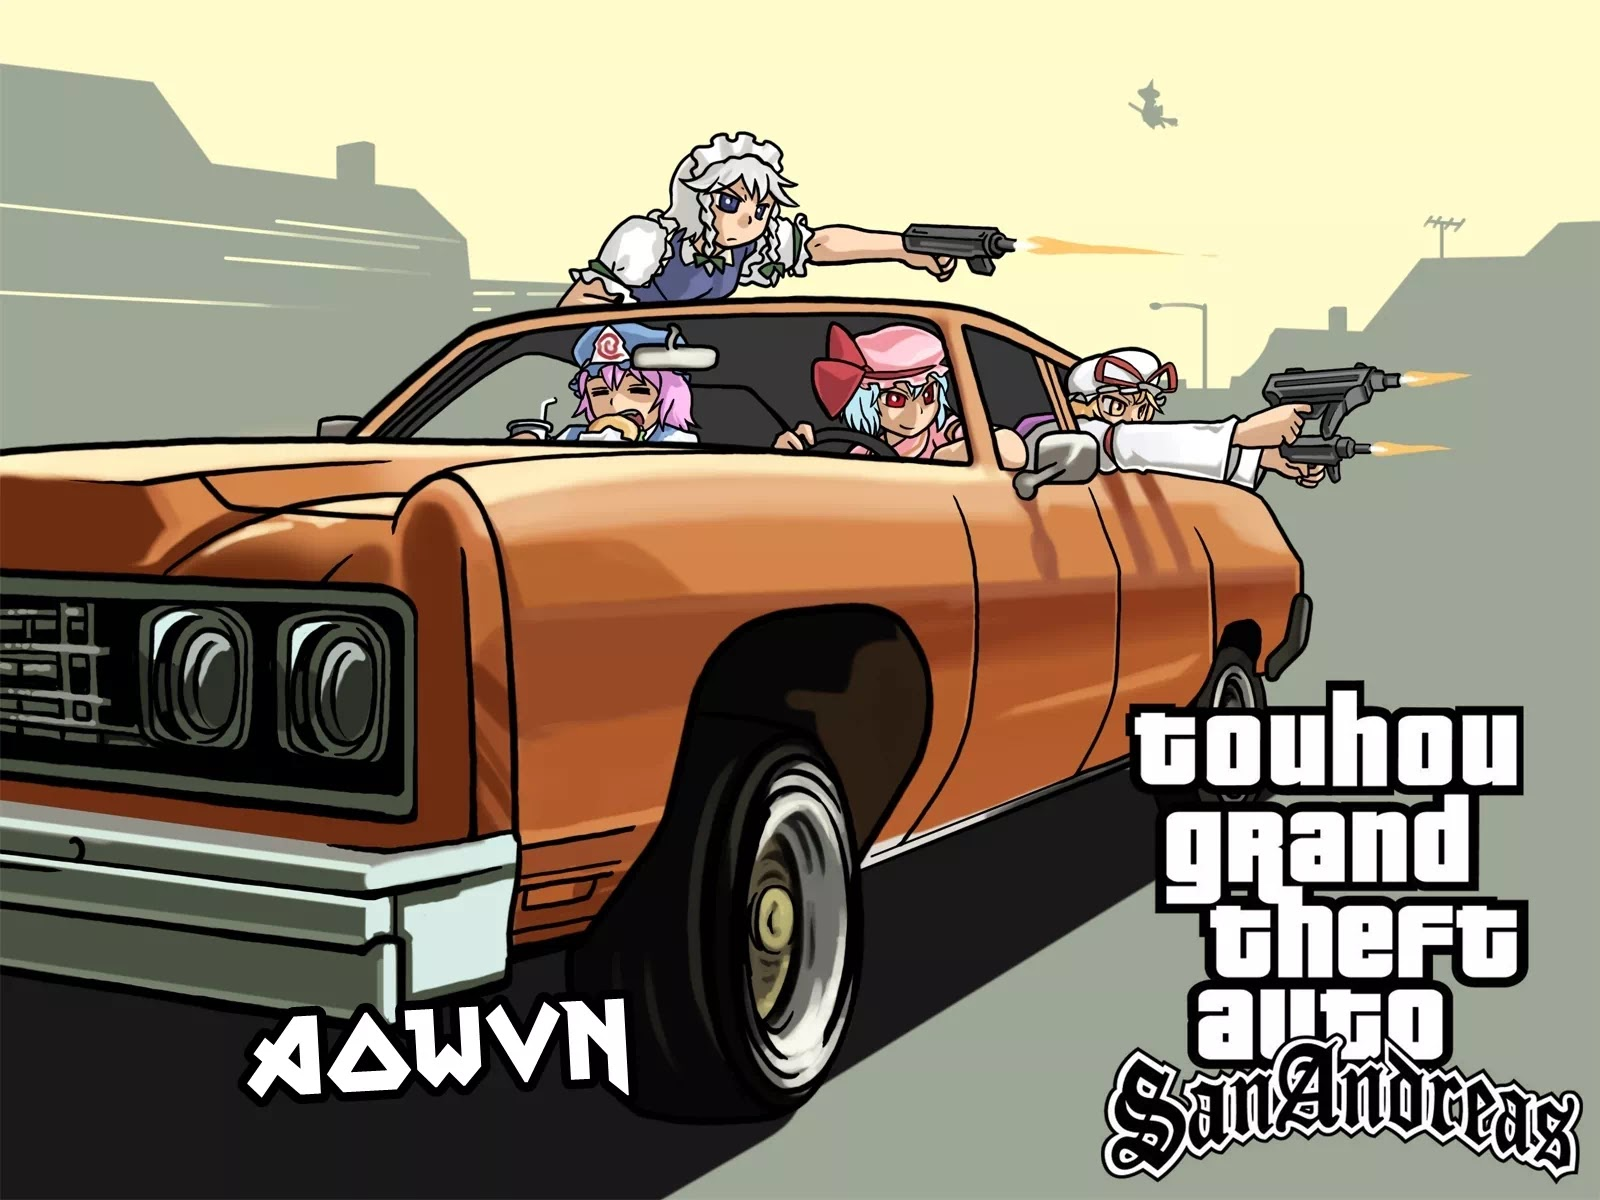 AowVN.org min%2B%252810%2529 - [ HOT ] GTA Grand Theft Auto: San Andreas Việt Hóa 99% | Game Android & IOS - Siêu phẩm game